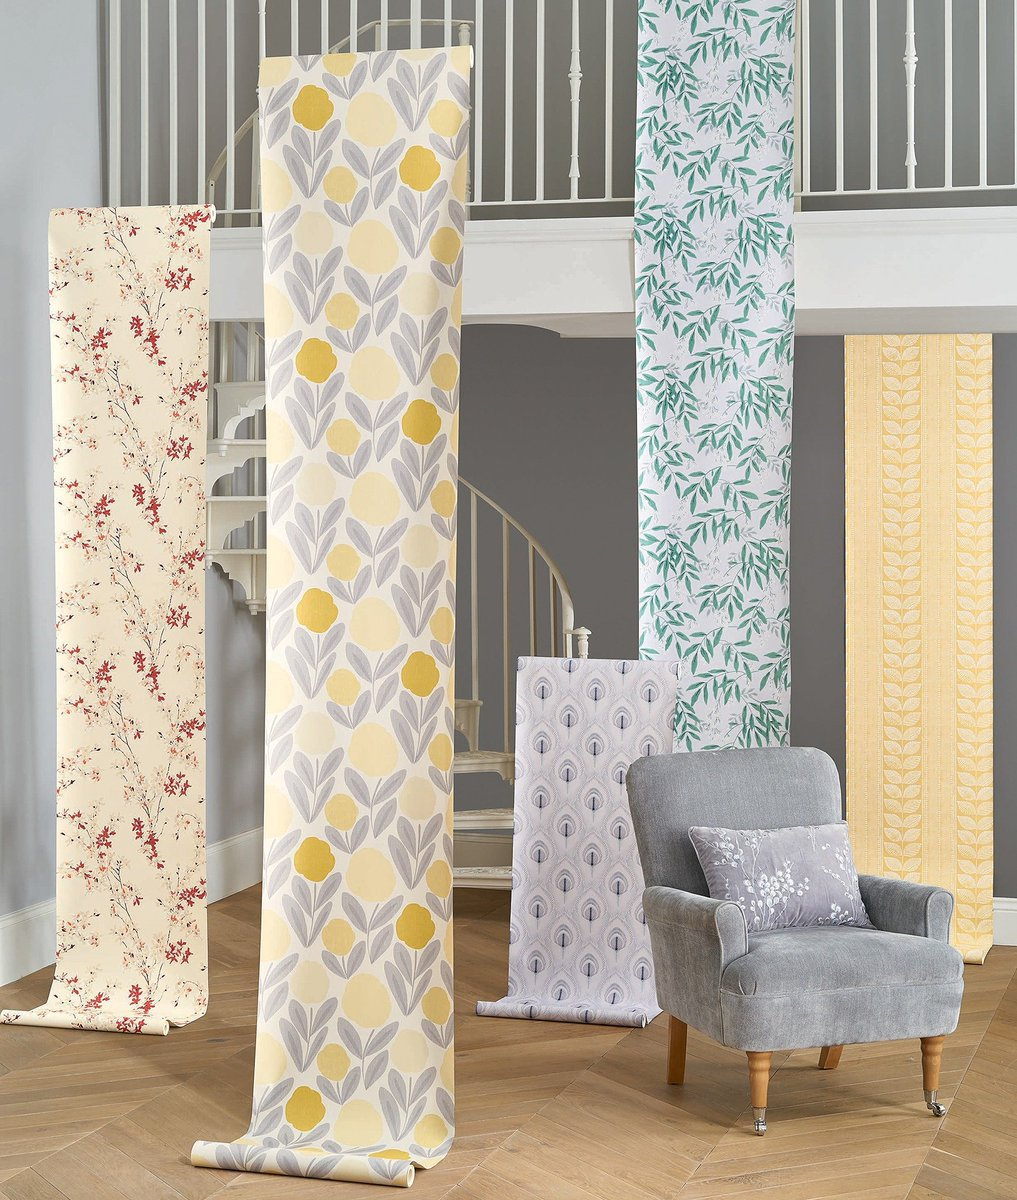 Laura Ashley On Twitter Choose One Of Our Elegant Wallpaper